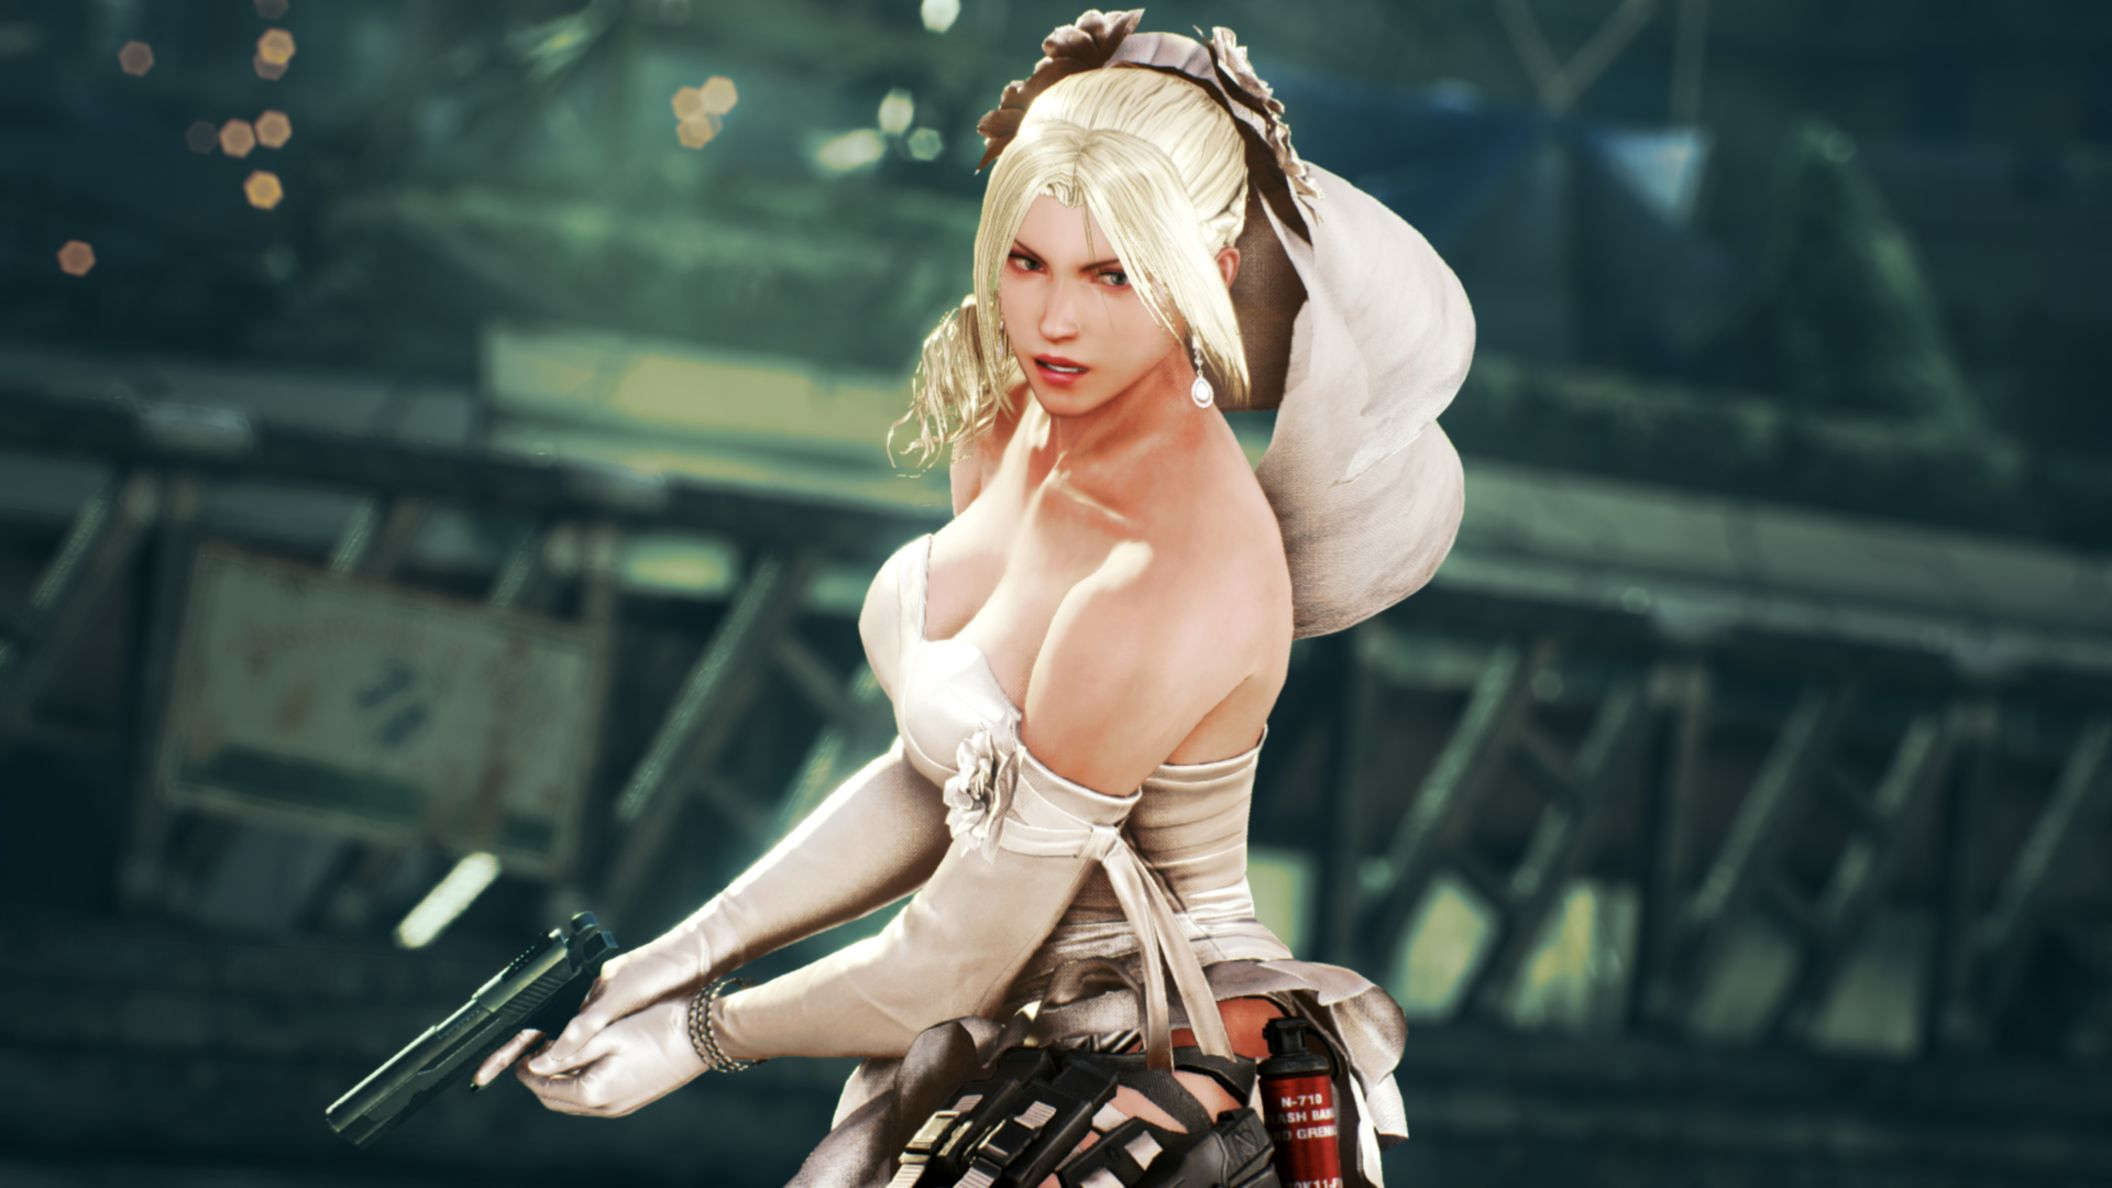 Download free HD Tekken 7 Nina Williams HD Wallpaper, image